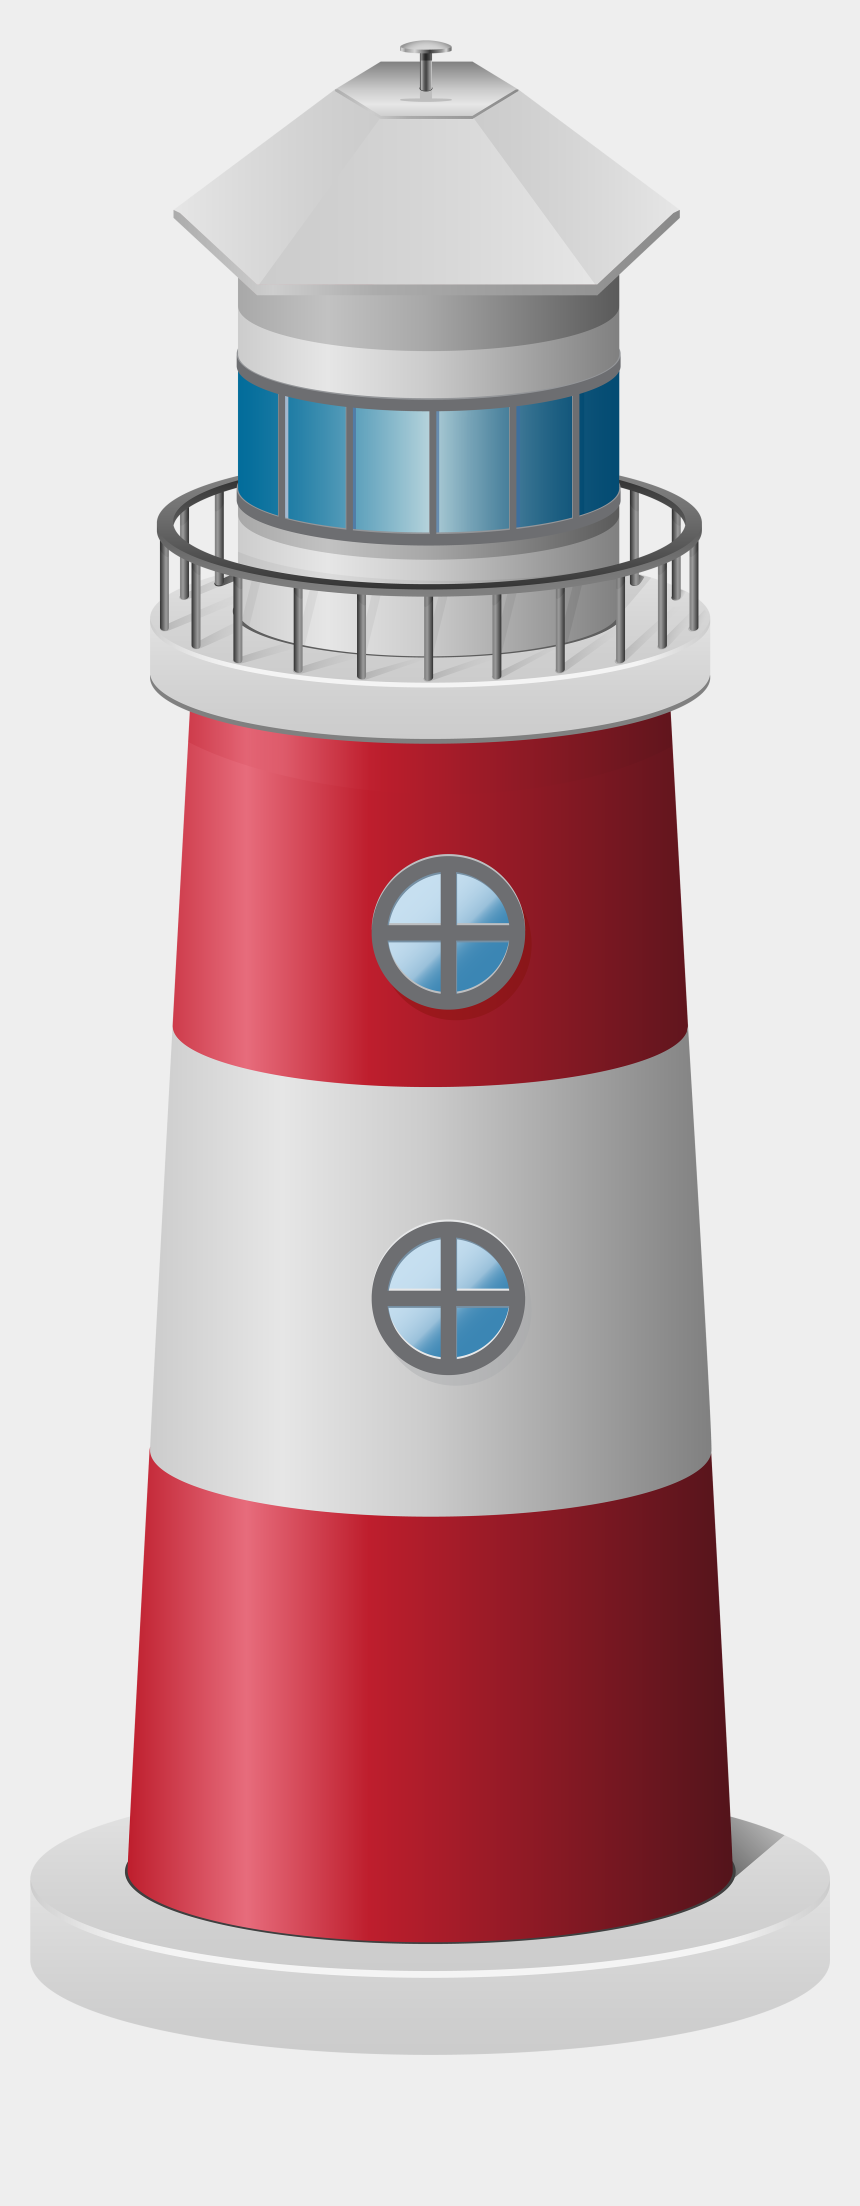 Lighthouse Clipart Png Lighthouse Image Transparent